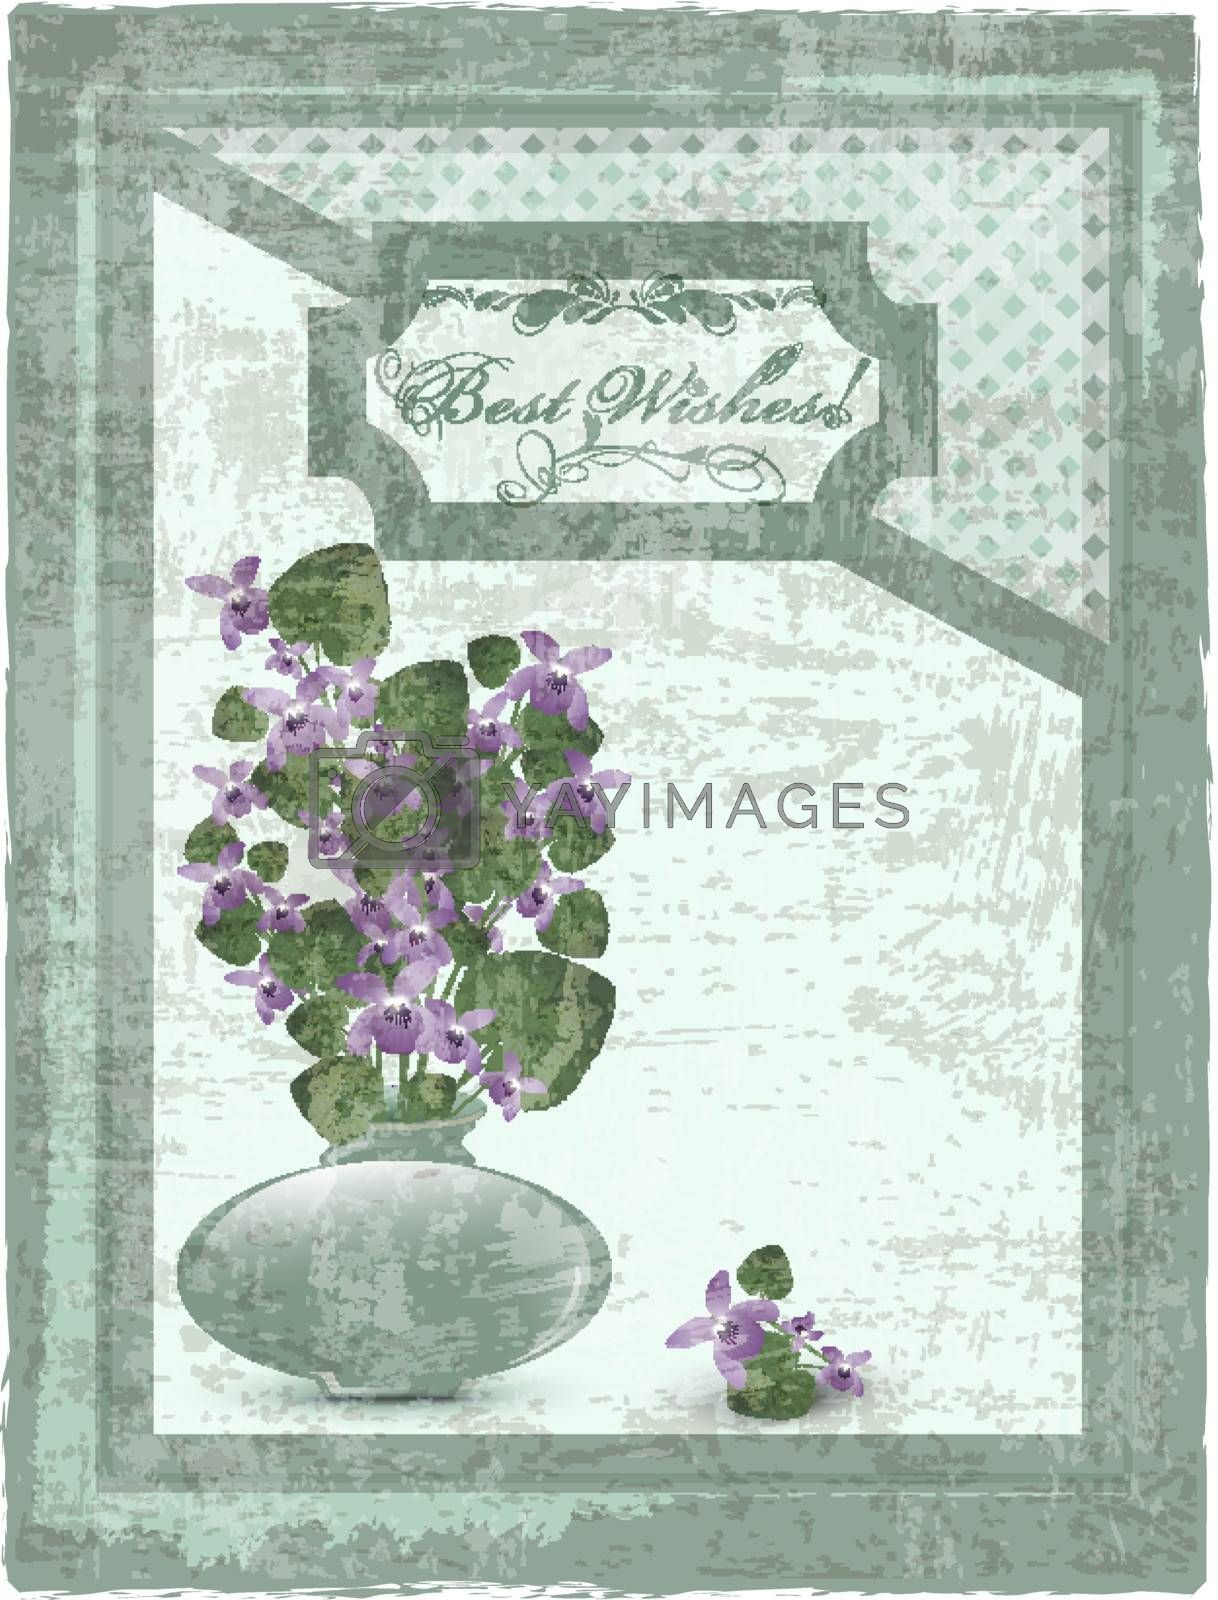 Best Wishes postcard with bunch of wild violet at grunge background